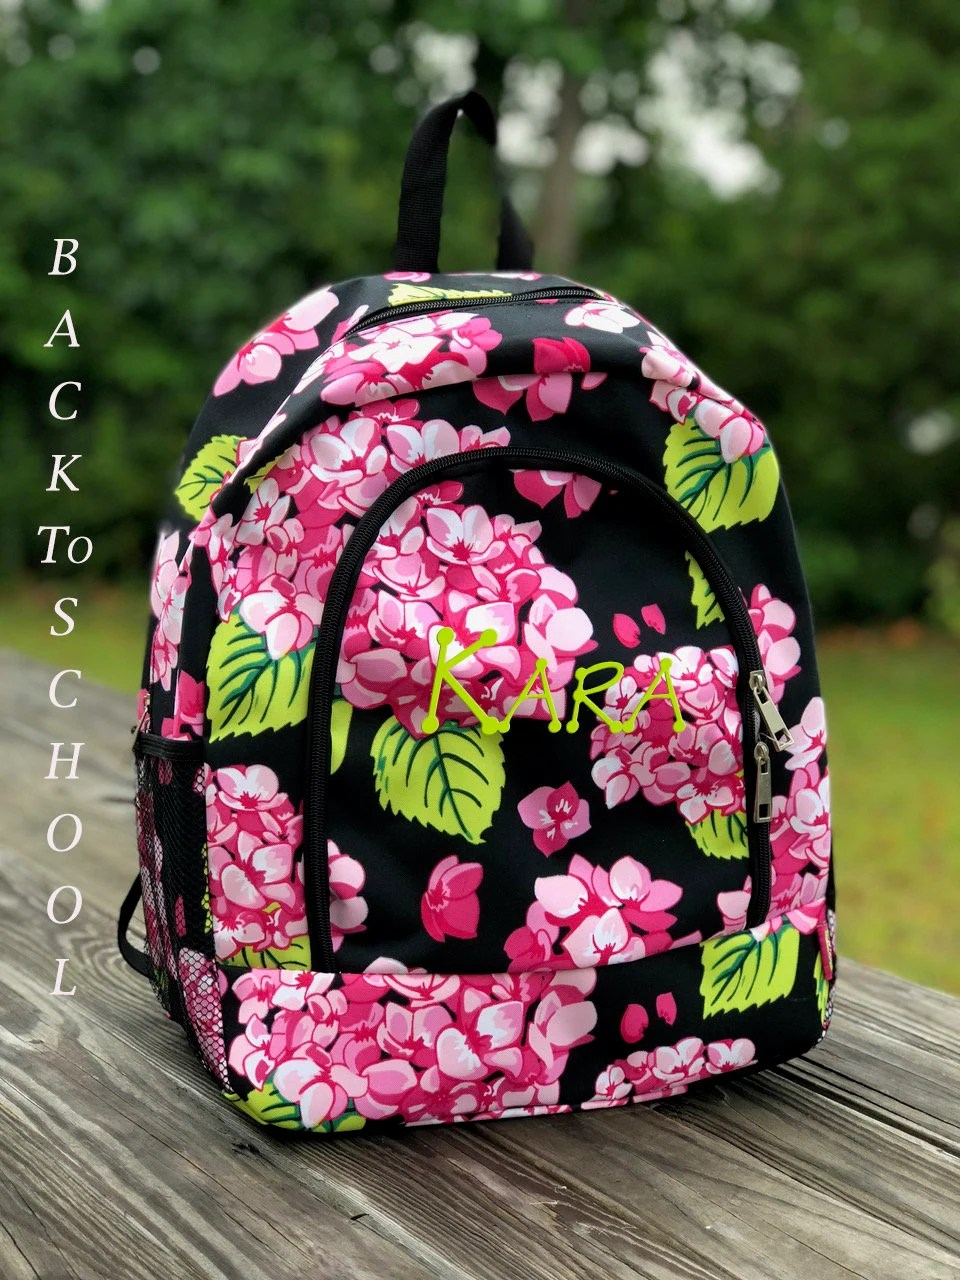 personalized backpack monongram kids